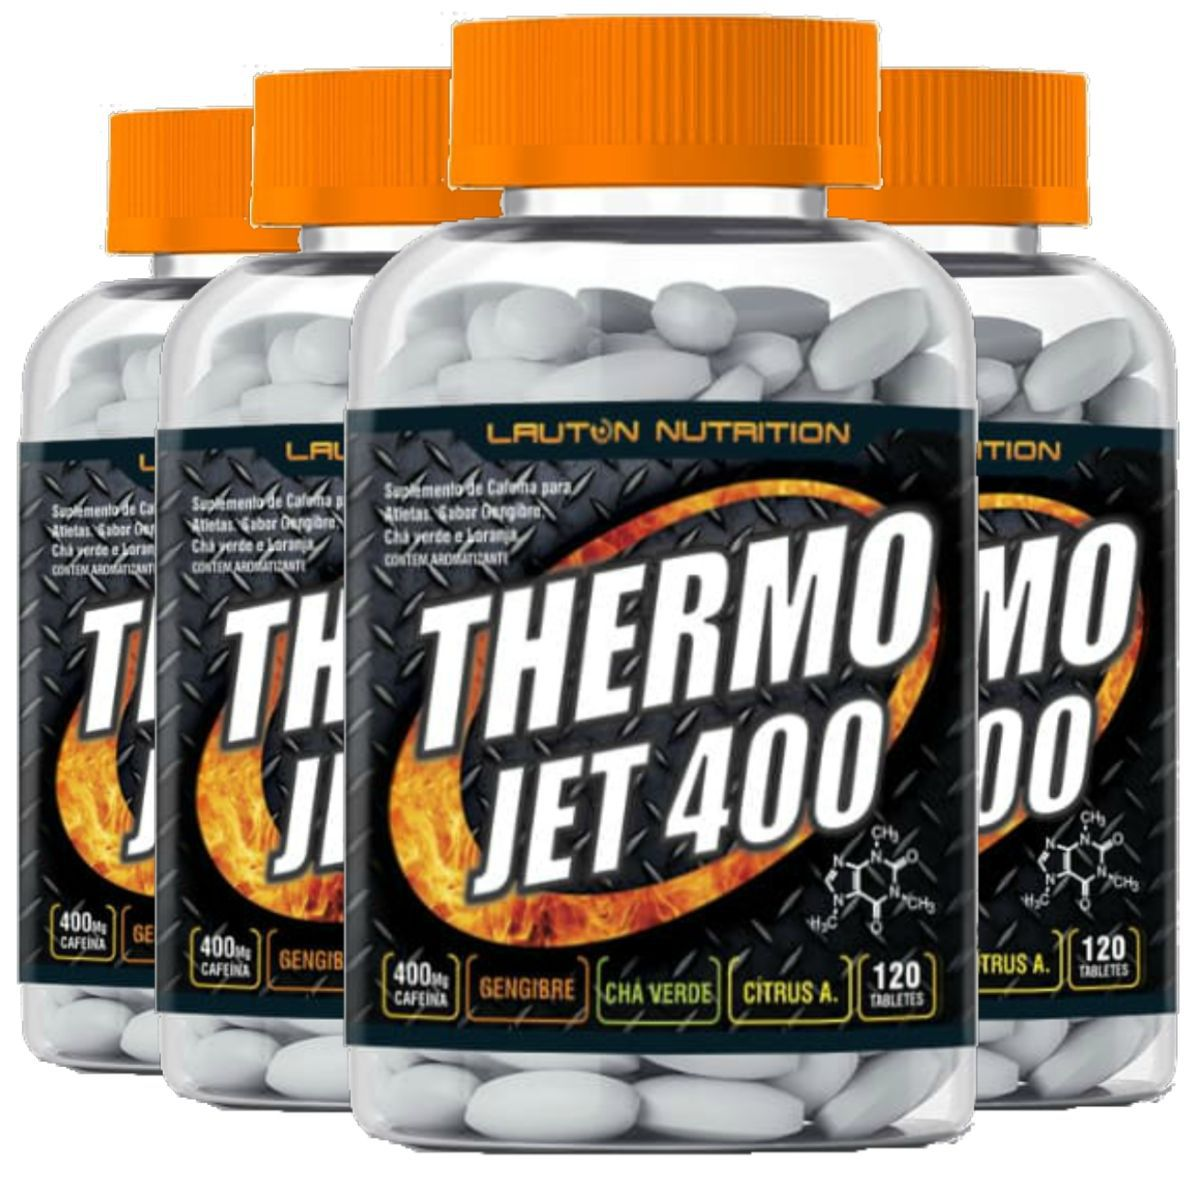 Kit 4 Thermo Jet 400 Termogênico Lauton Nutrition 120 Comp